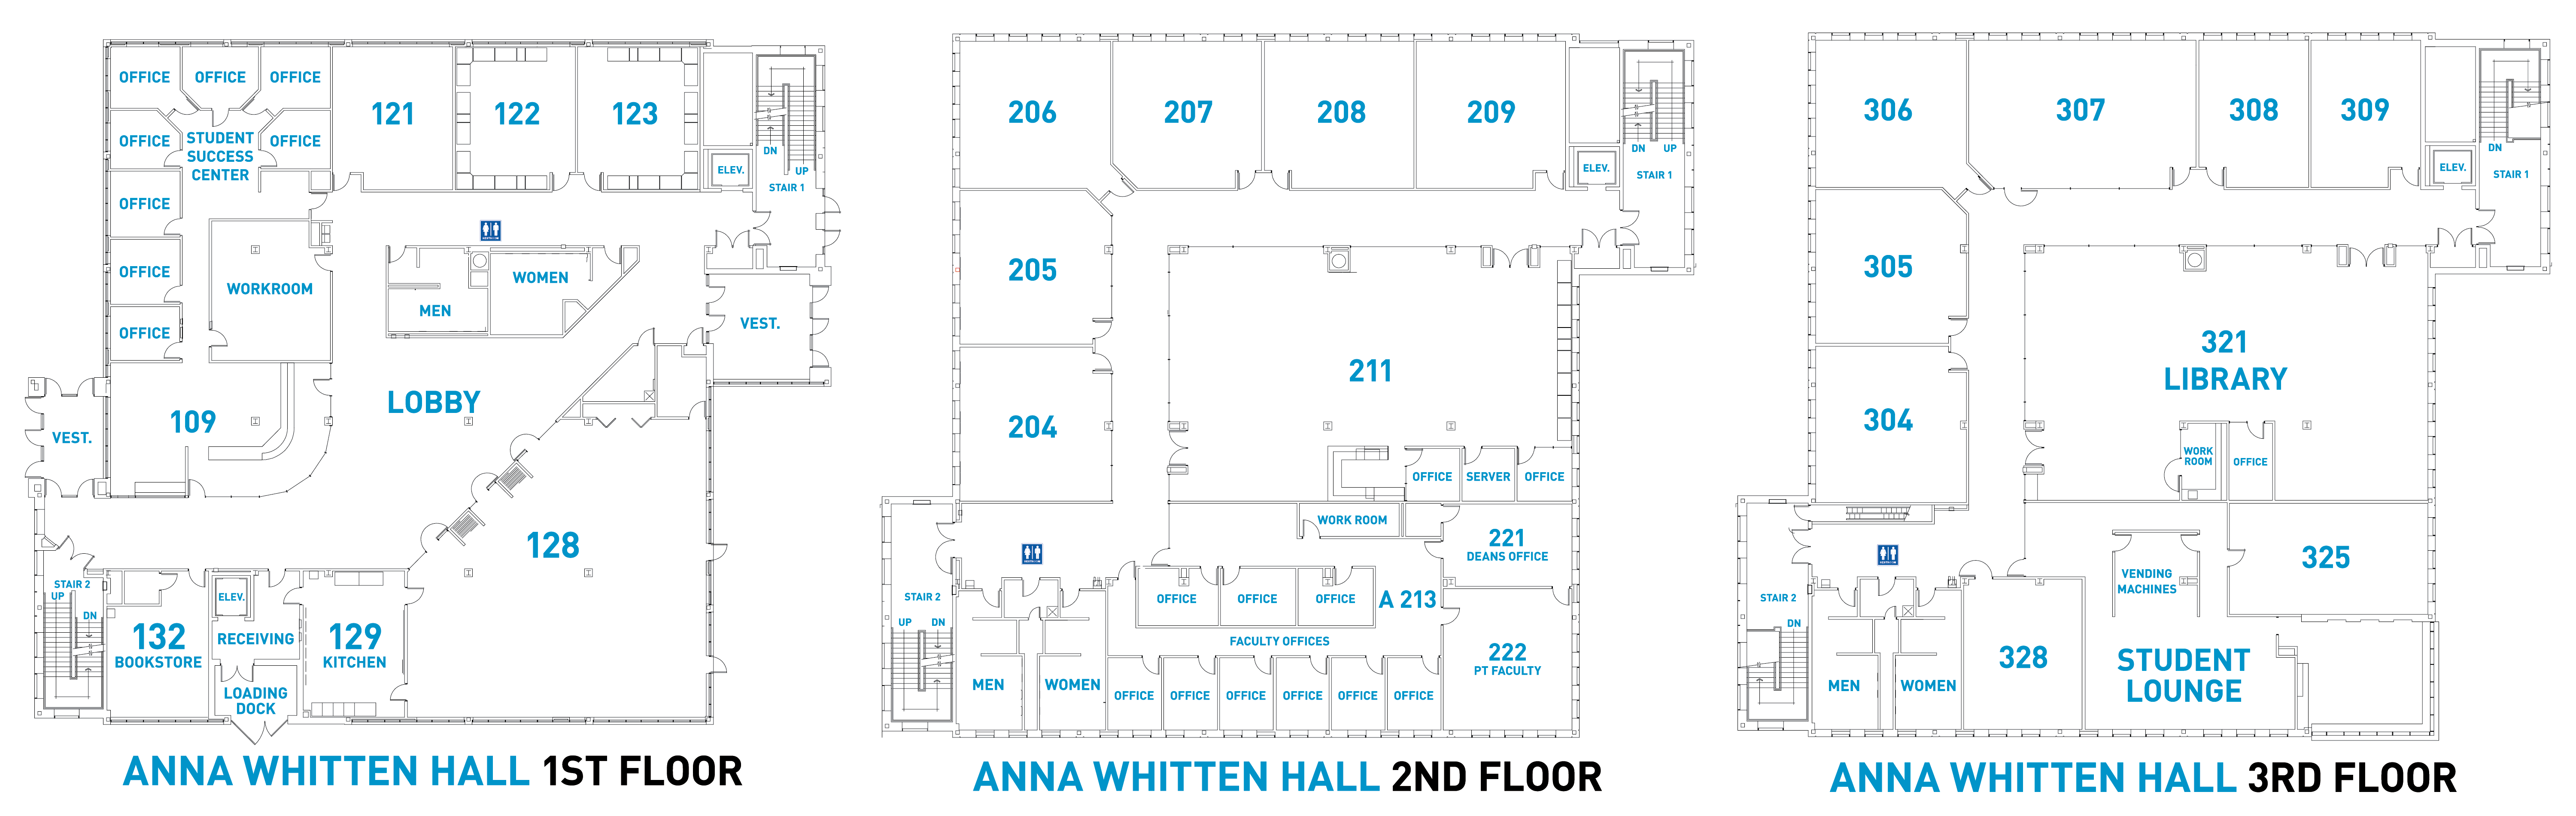 Anna Whitten Hall Map - Kalamazoo Valley Community College on kvcc texas township campus map, chemeketa community college campus map, kvcc groves campus center map,